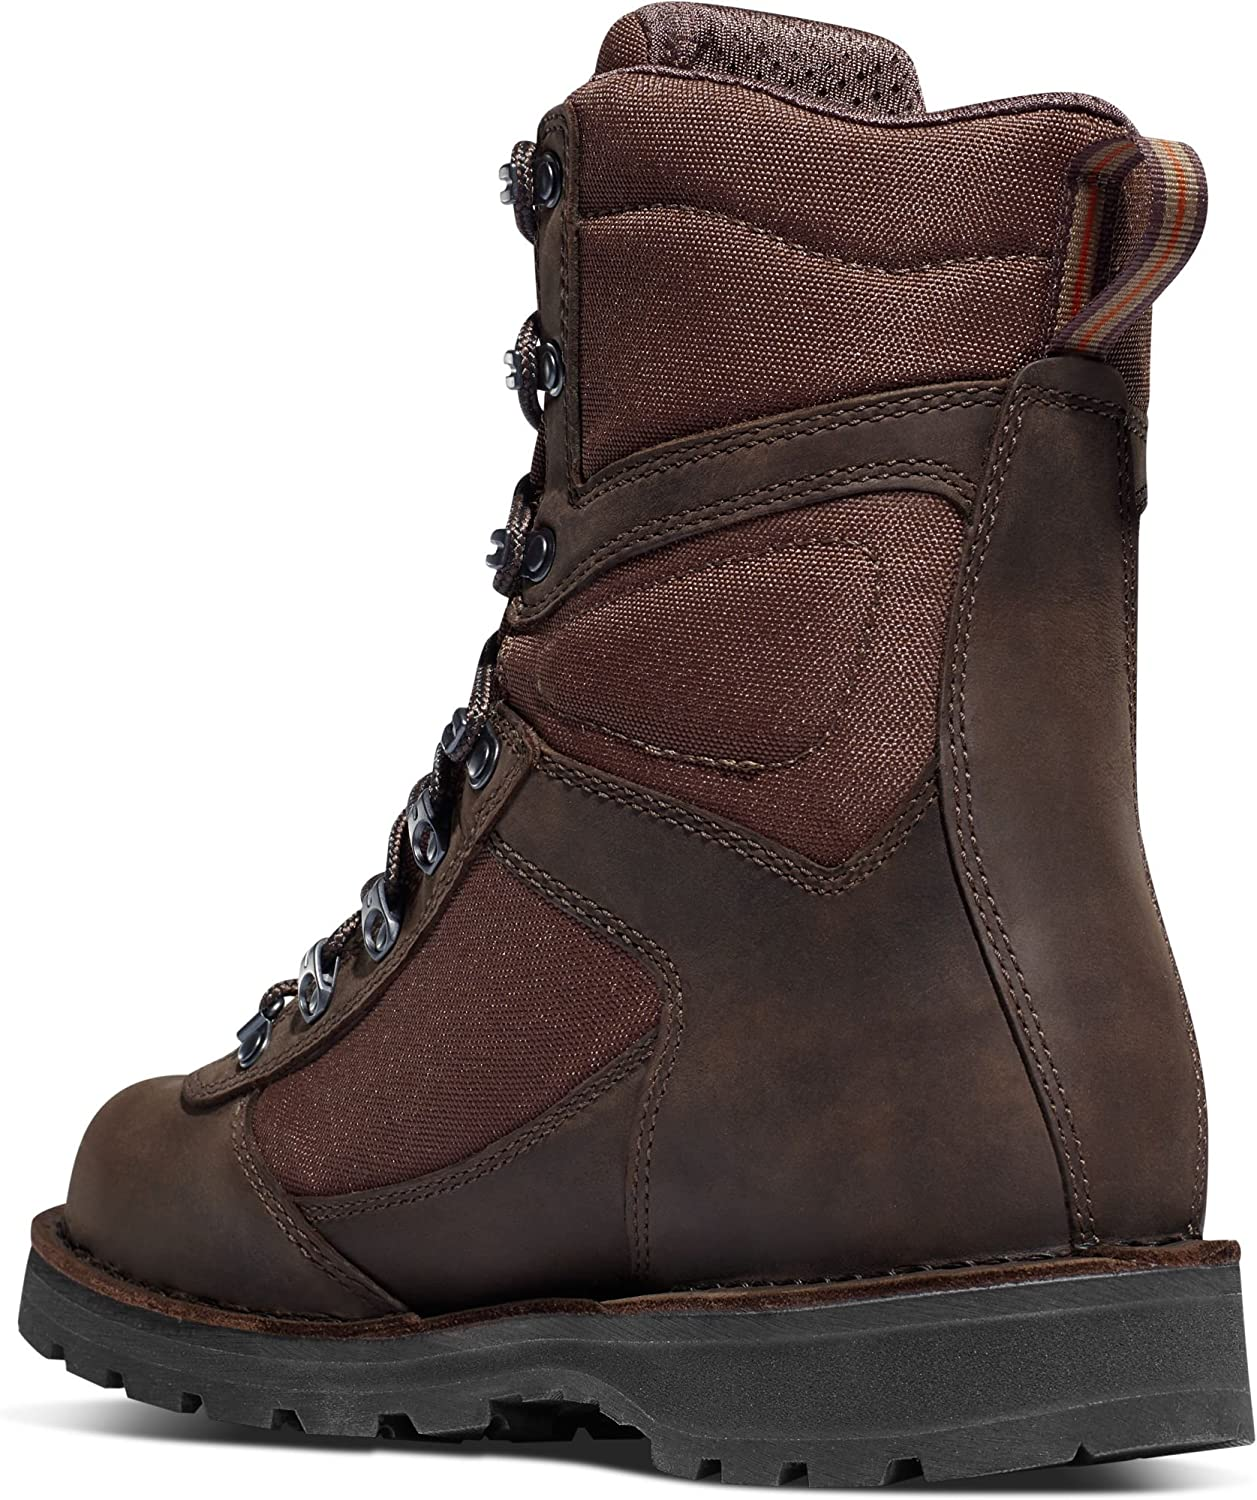 Danner East Ridge Brown Insulated 400G Boot 10 Height 62115 Hunting Boots Vibram Sole Waterproof Hiking Boots